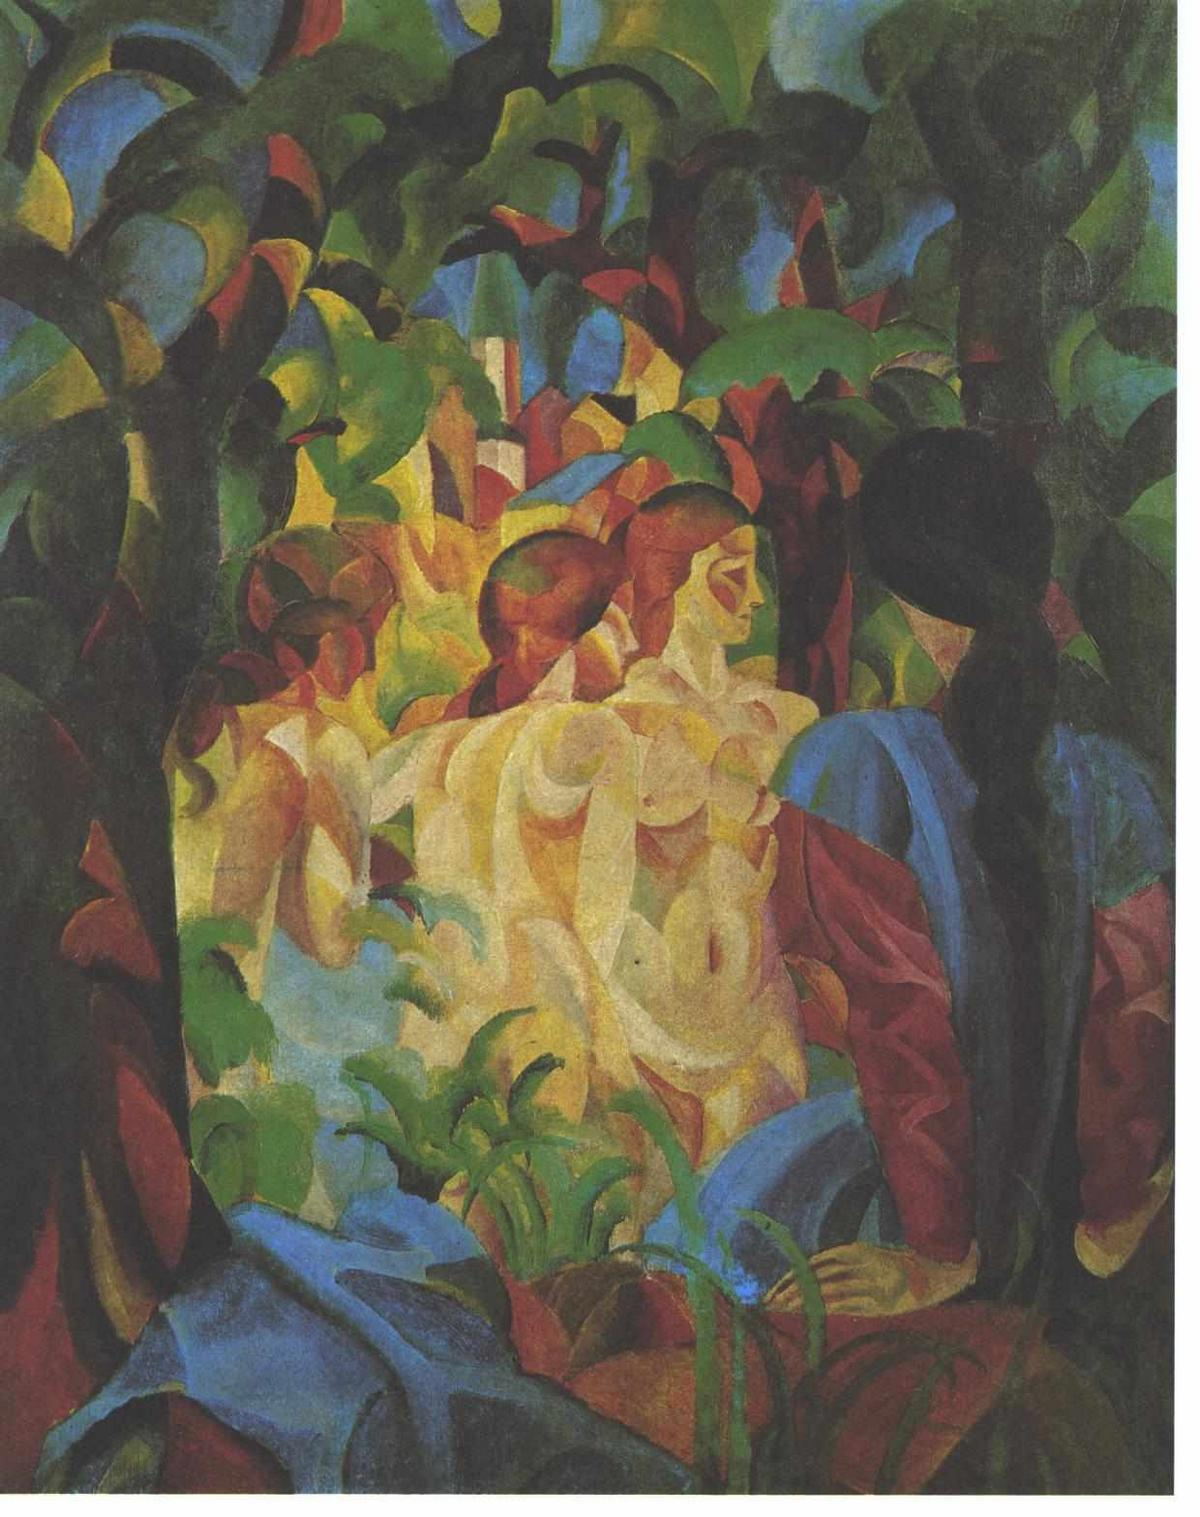 Bathing girls with town in the backgraund - August Macke